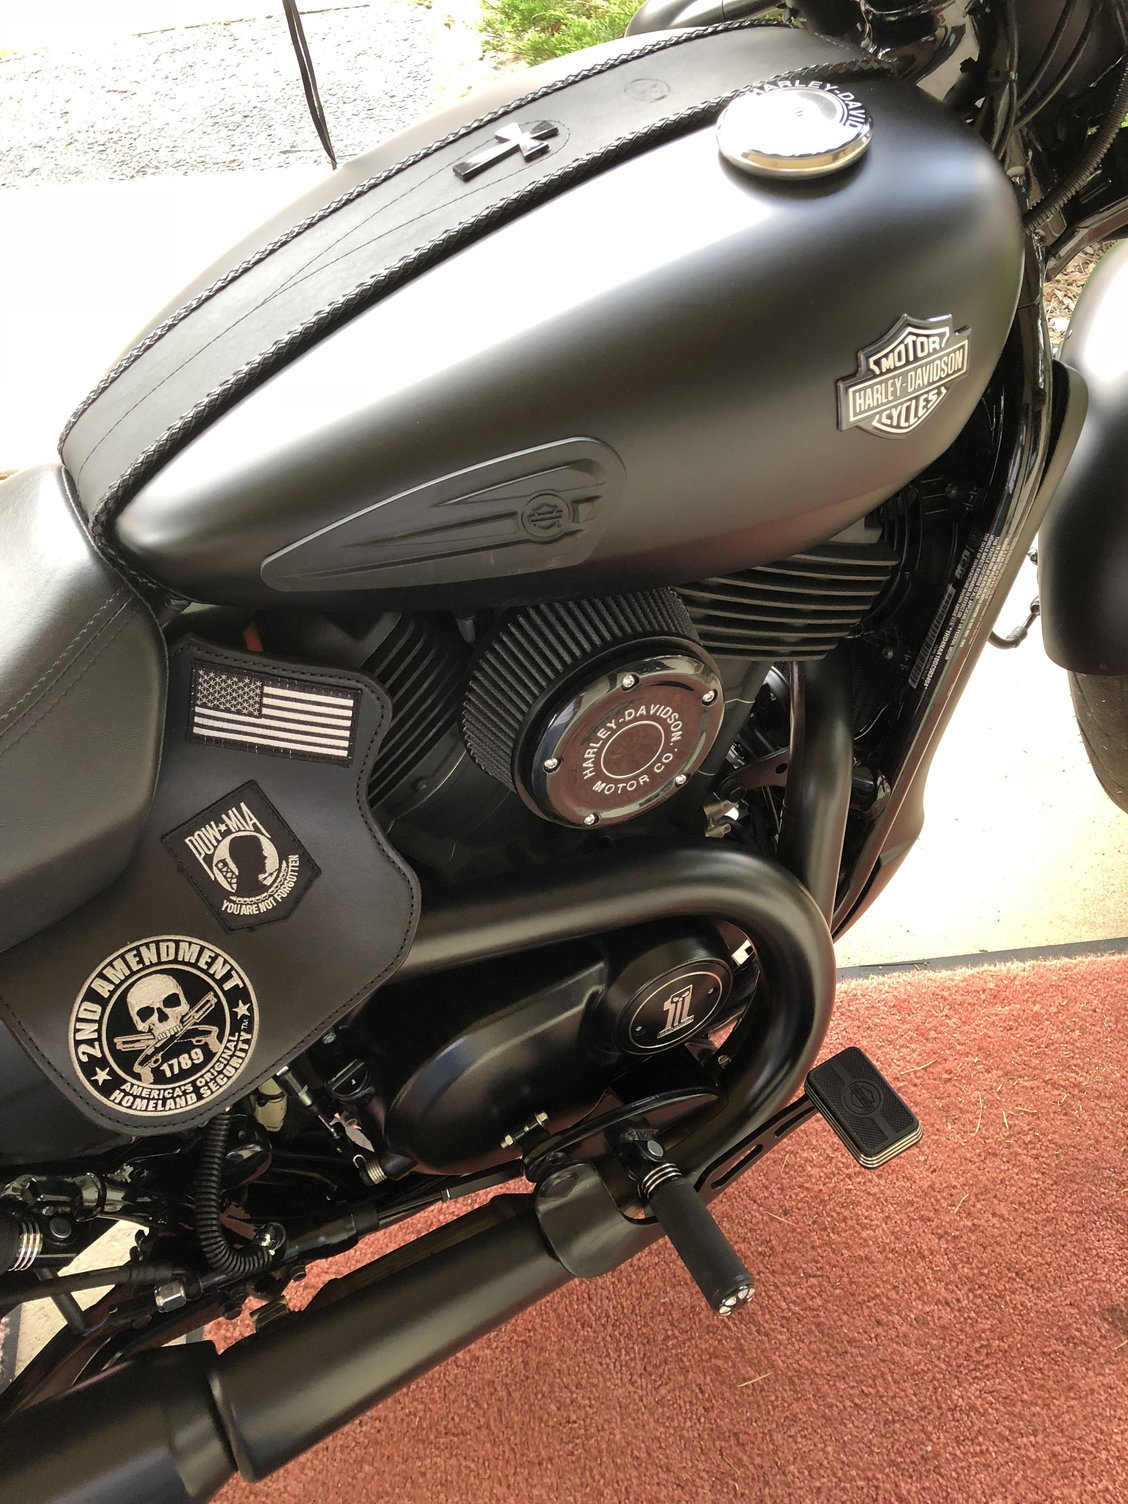 Anyone complete Stage 1 on 500/750? - Harley Davidson Forums